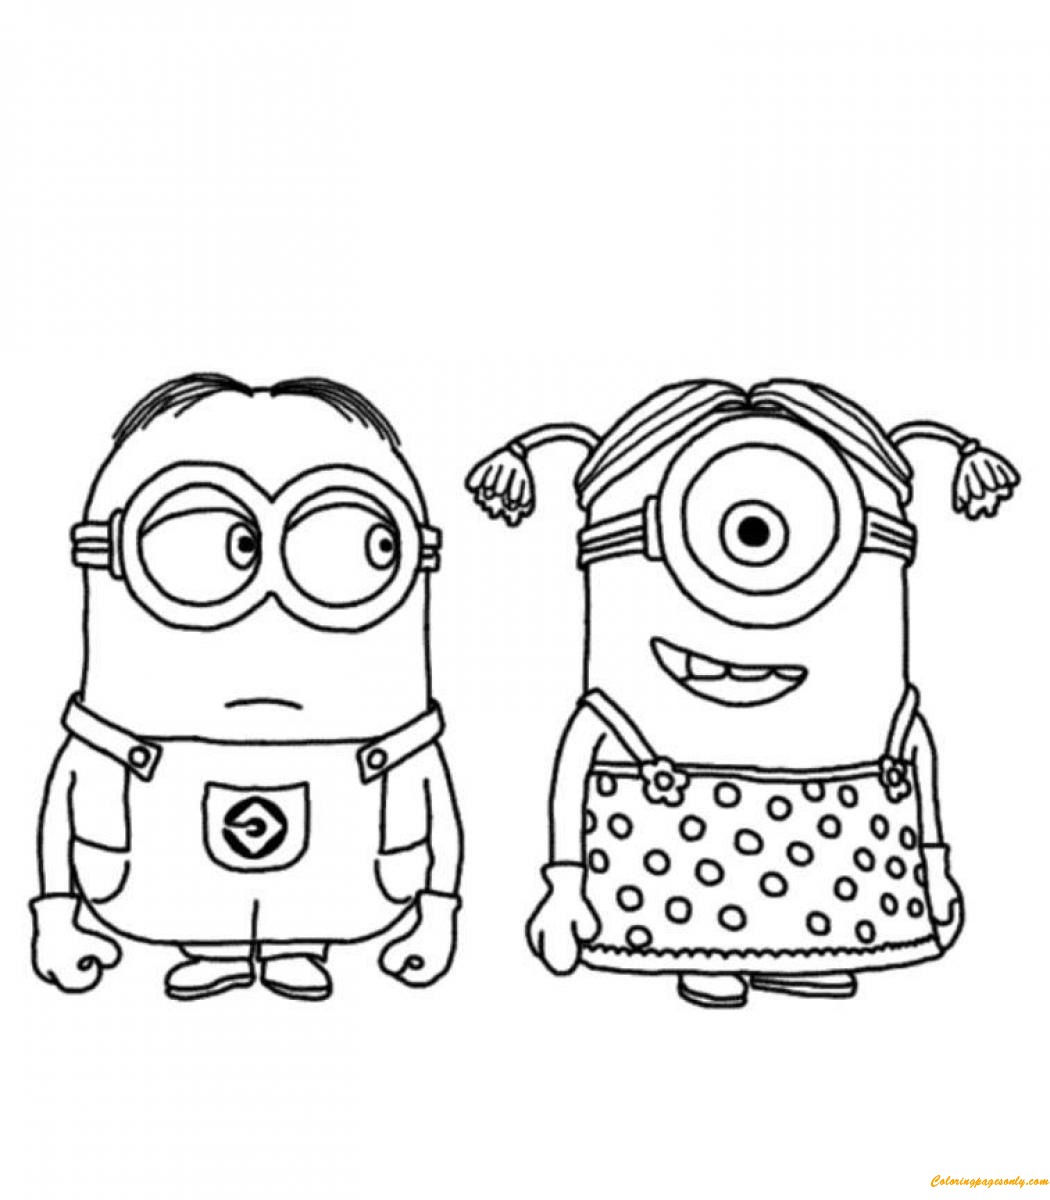 despicable me coloring pages online smiley minion despicable me sb76d coloring pages printable online despicable me coloring pages